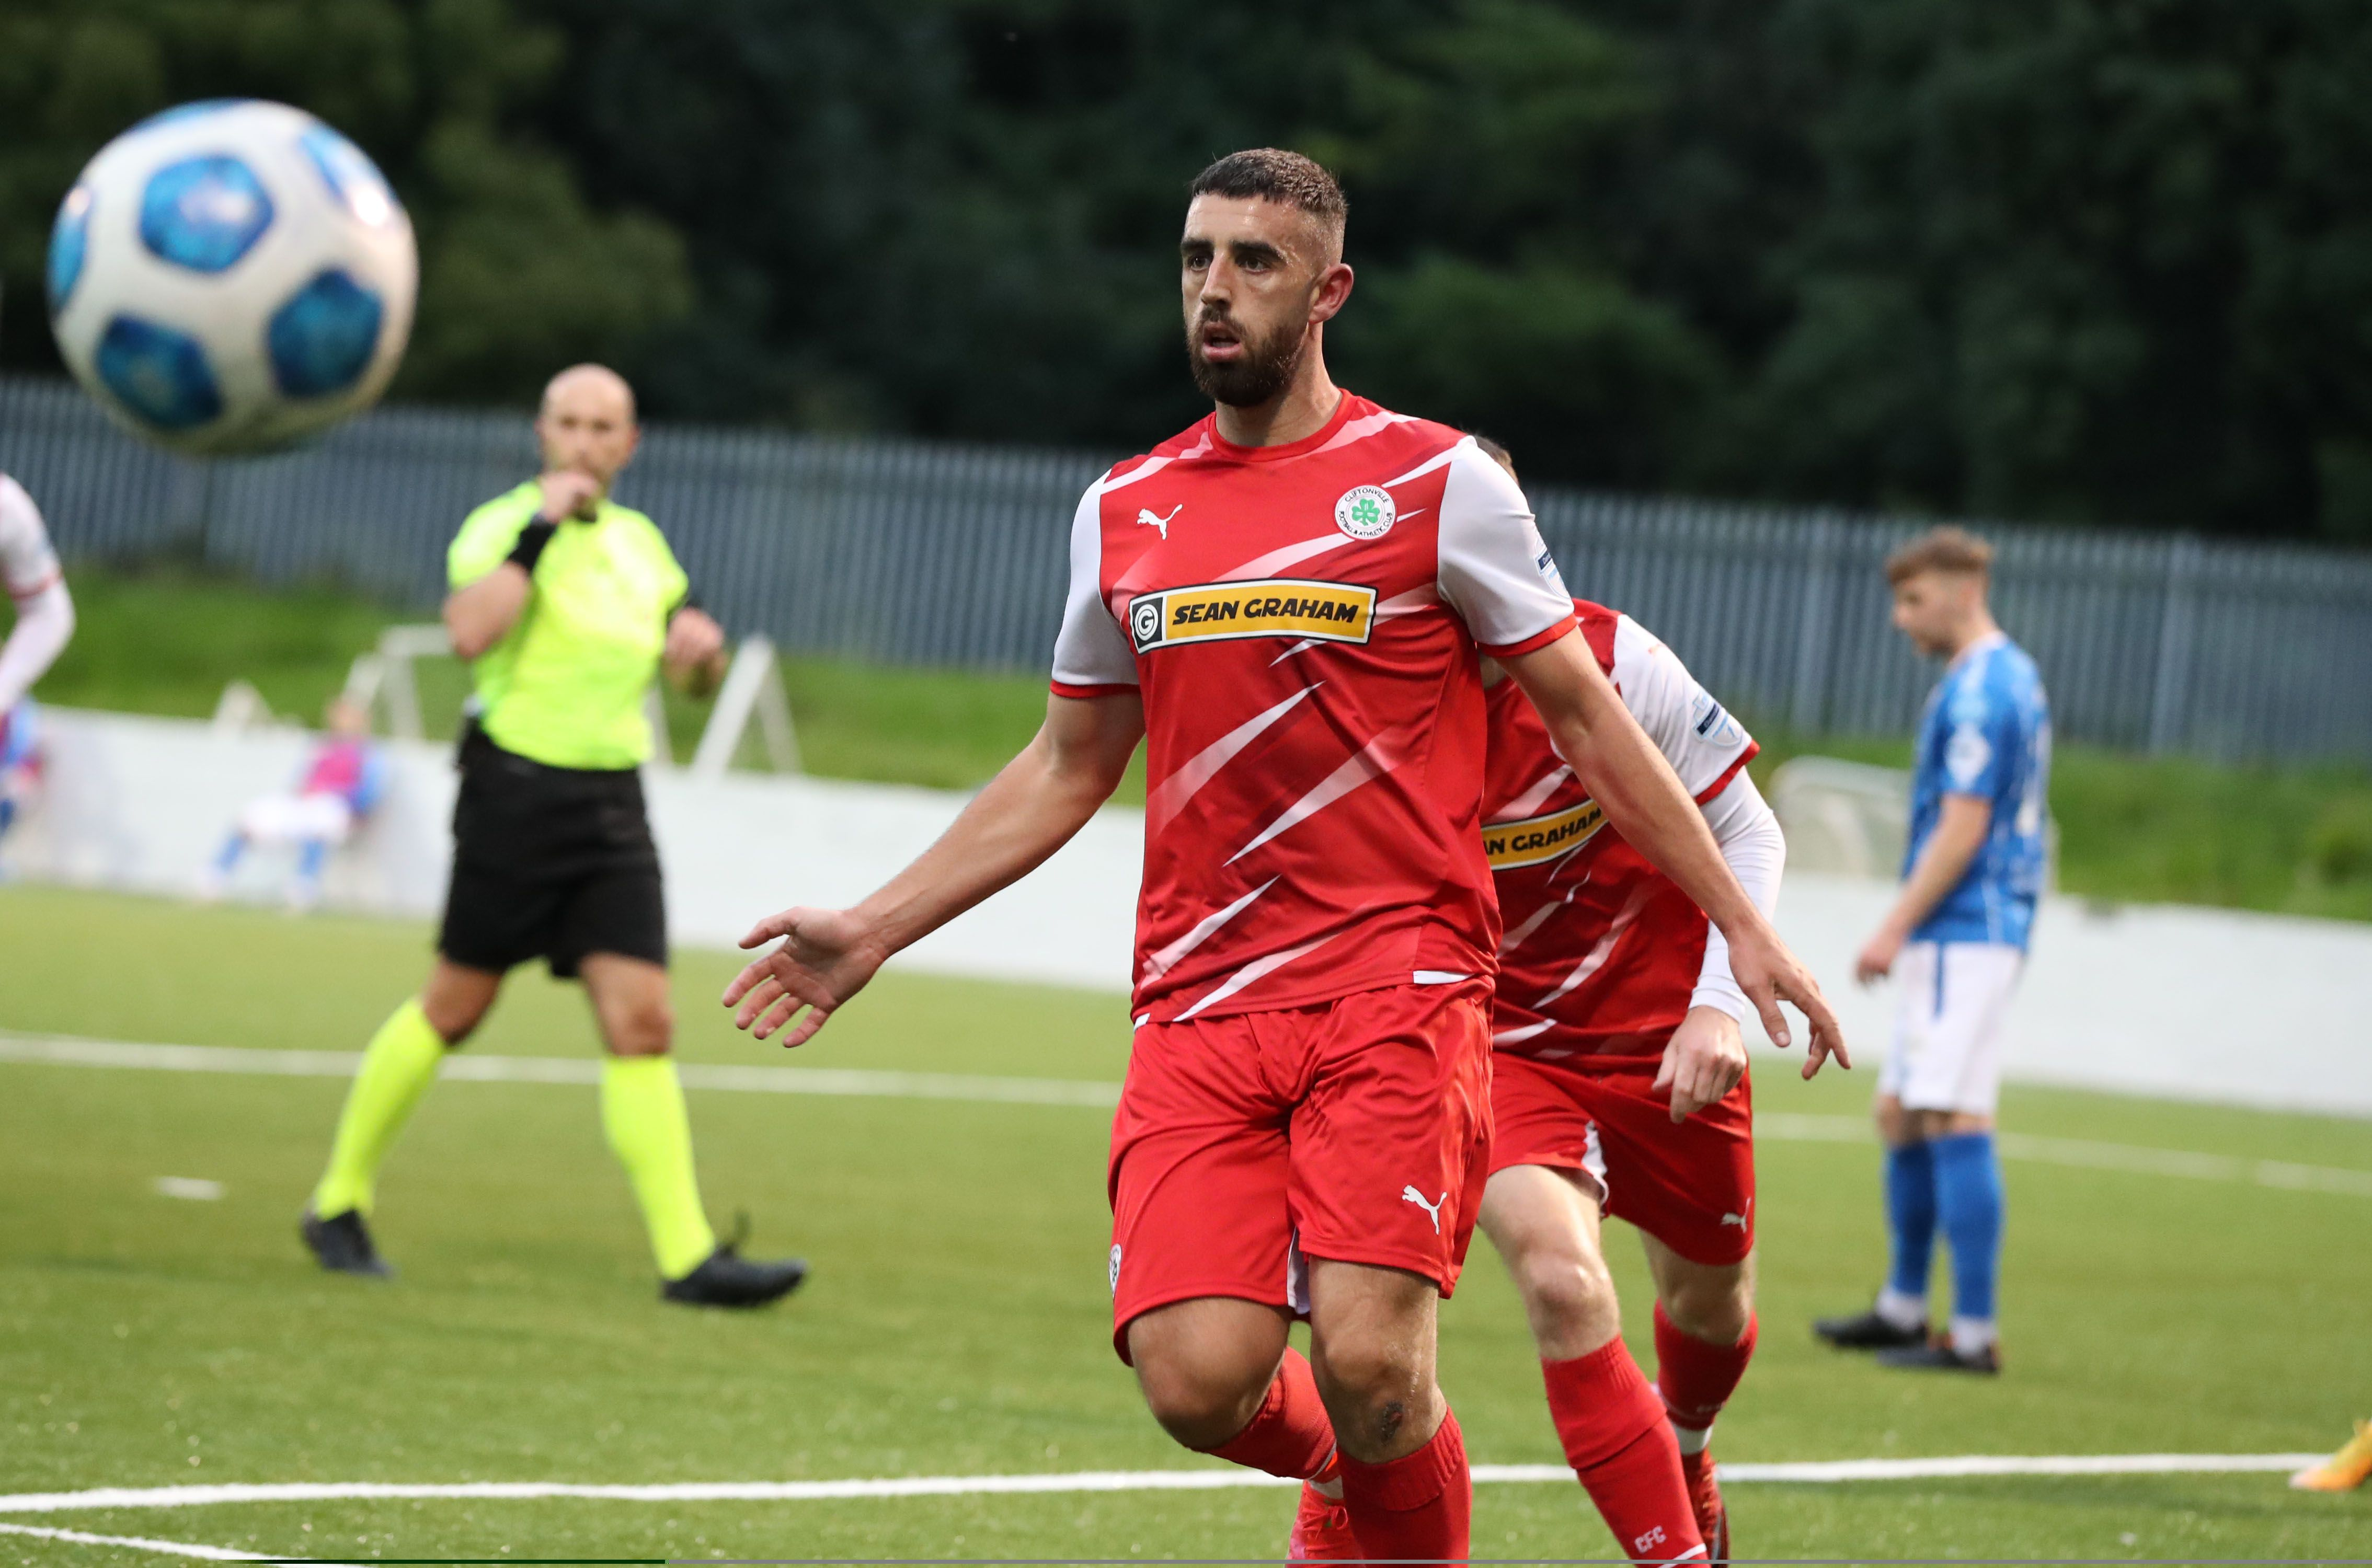 Paddy McLaughlin paid tribute to record goalscorer Joe Gormley who made his 350th appearance for the club on Saturday